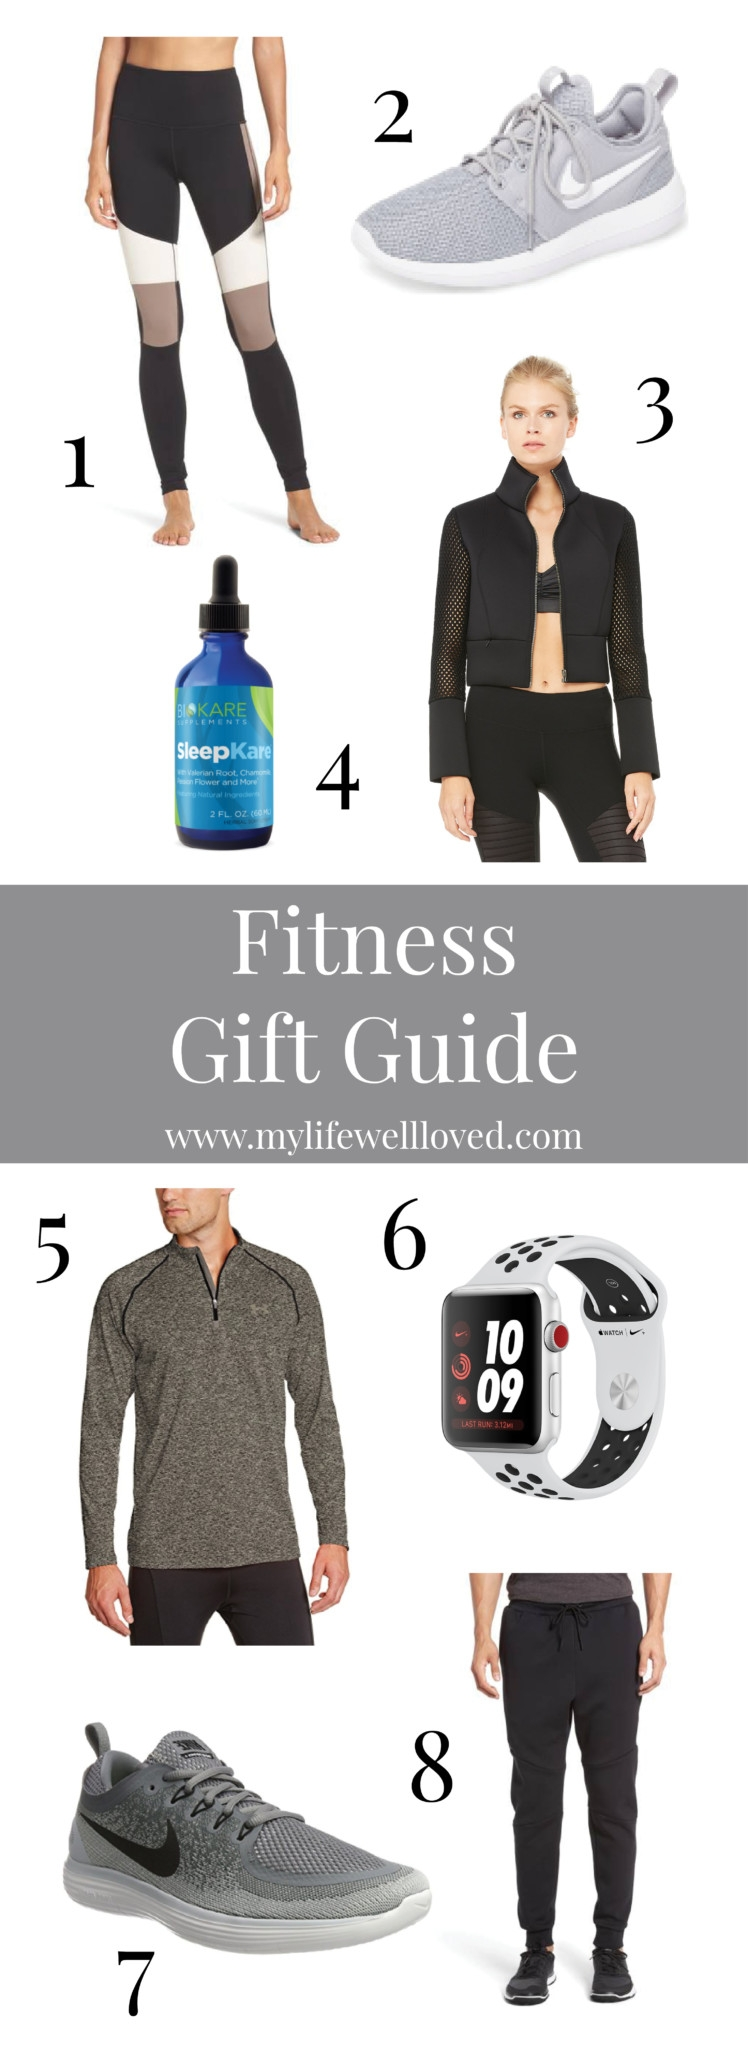 Fitness Gift Guide for Him and Her from Alabama blogger Heather of MyLifeWellLoved.com // Best health and fitness buys for gifts